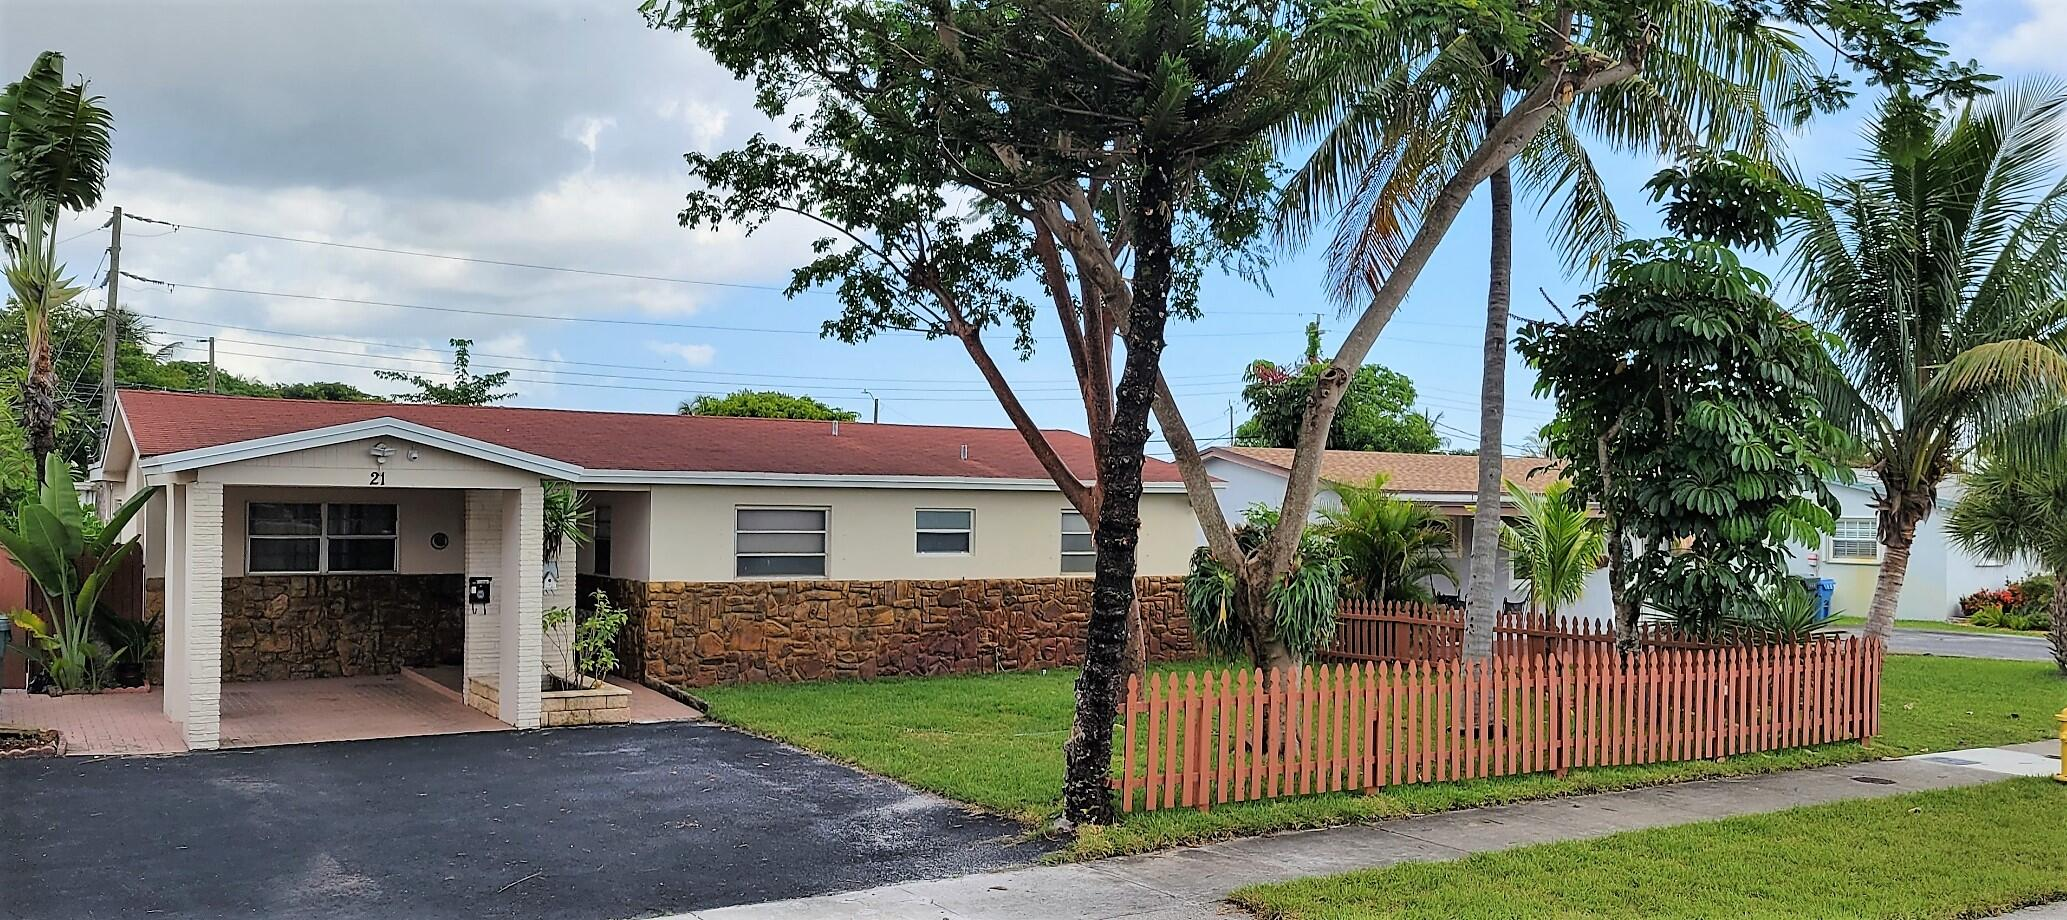 21 57th Court, Oakland Park, Florida 33334, 3 Bedrooms Bedrooms, ,2 BathroomsBathrooms,Residential,For Sale,57th,RX-10745947